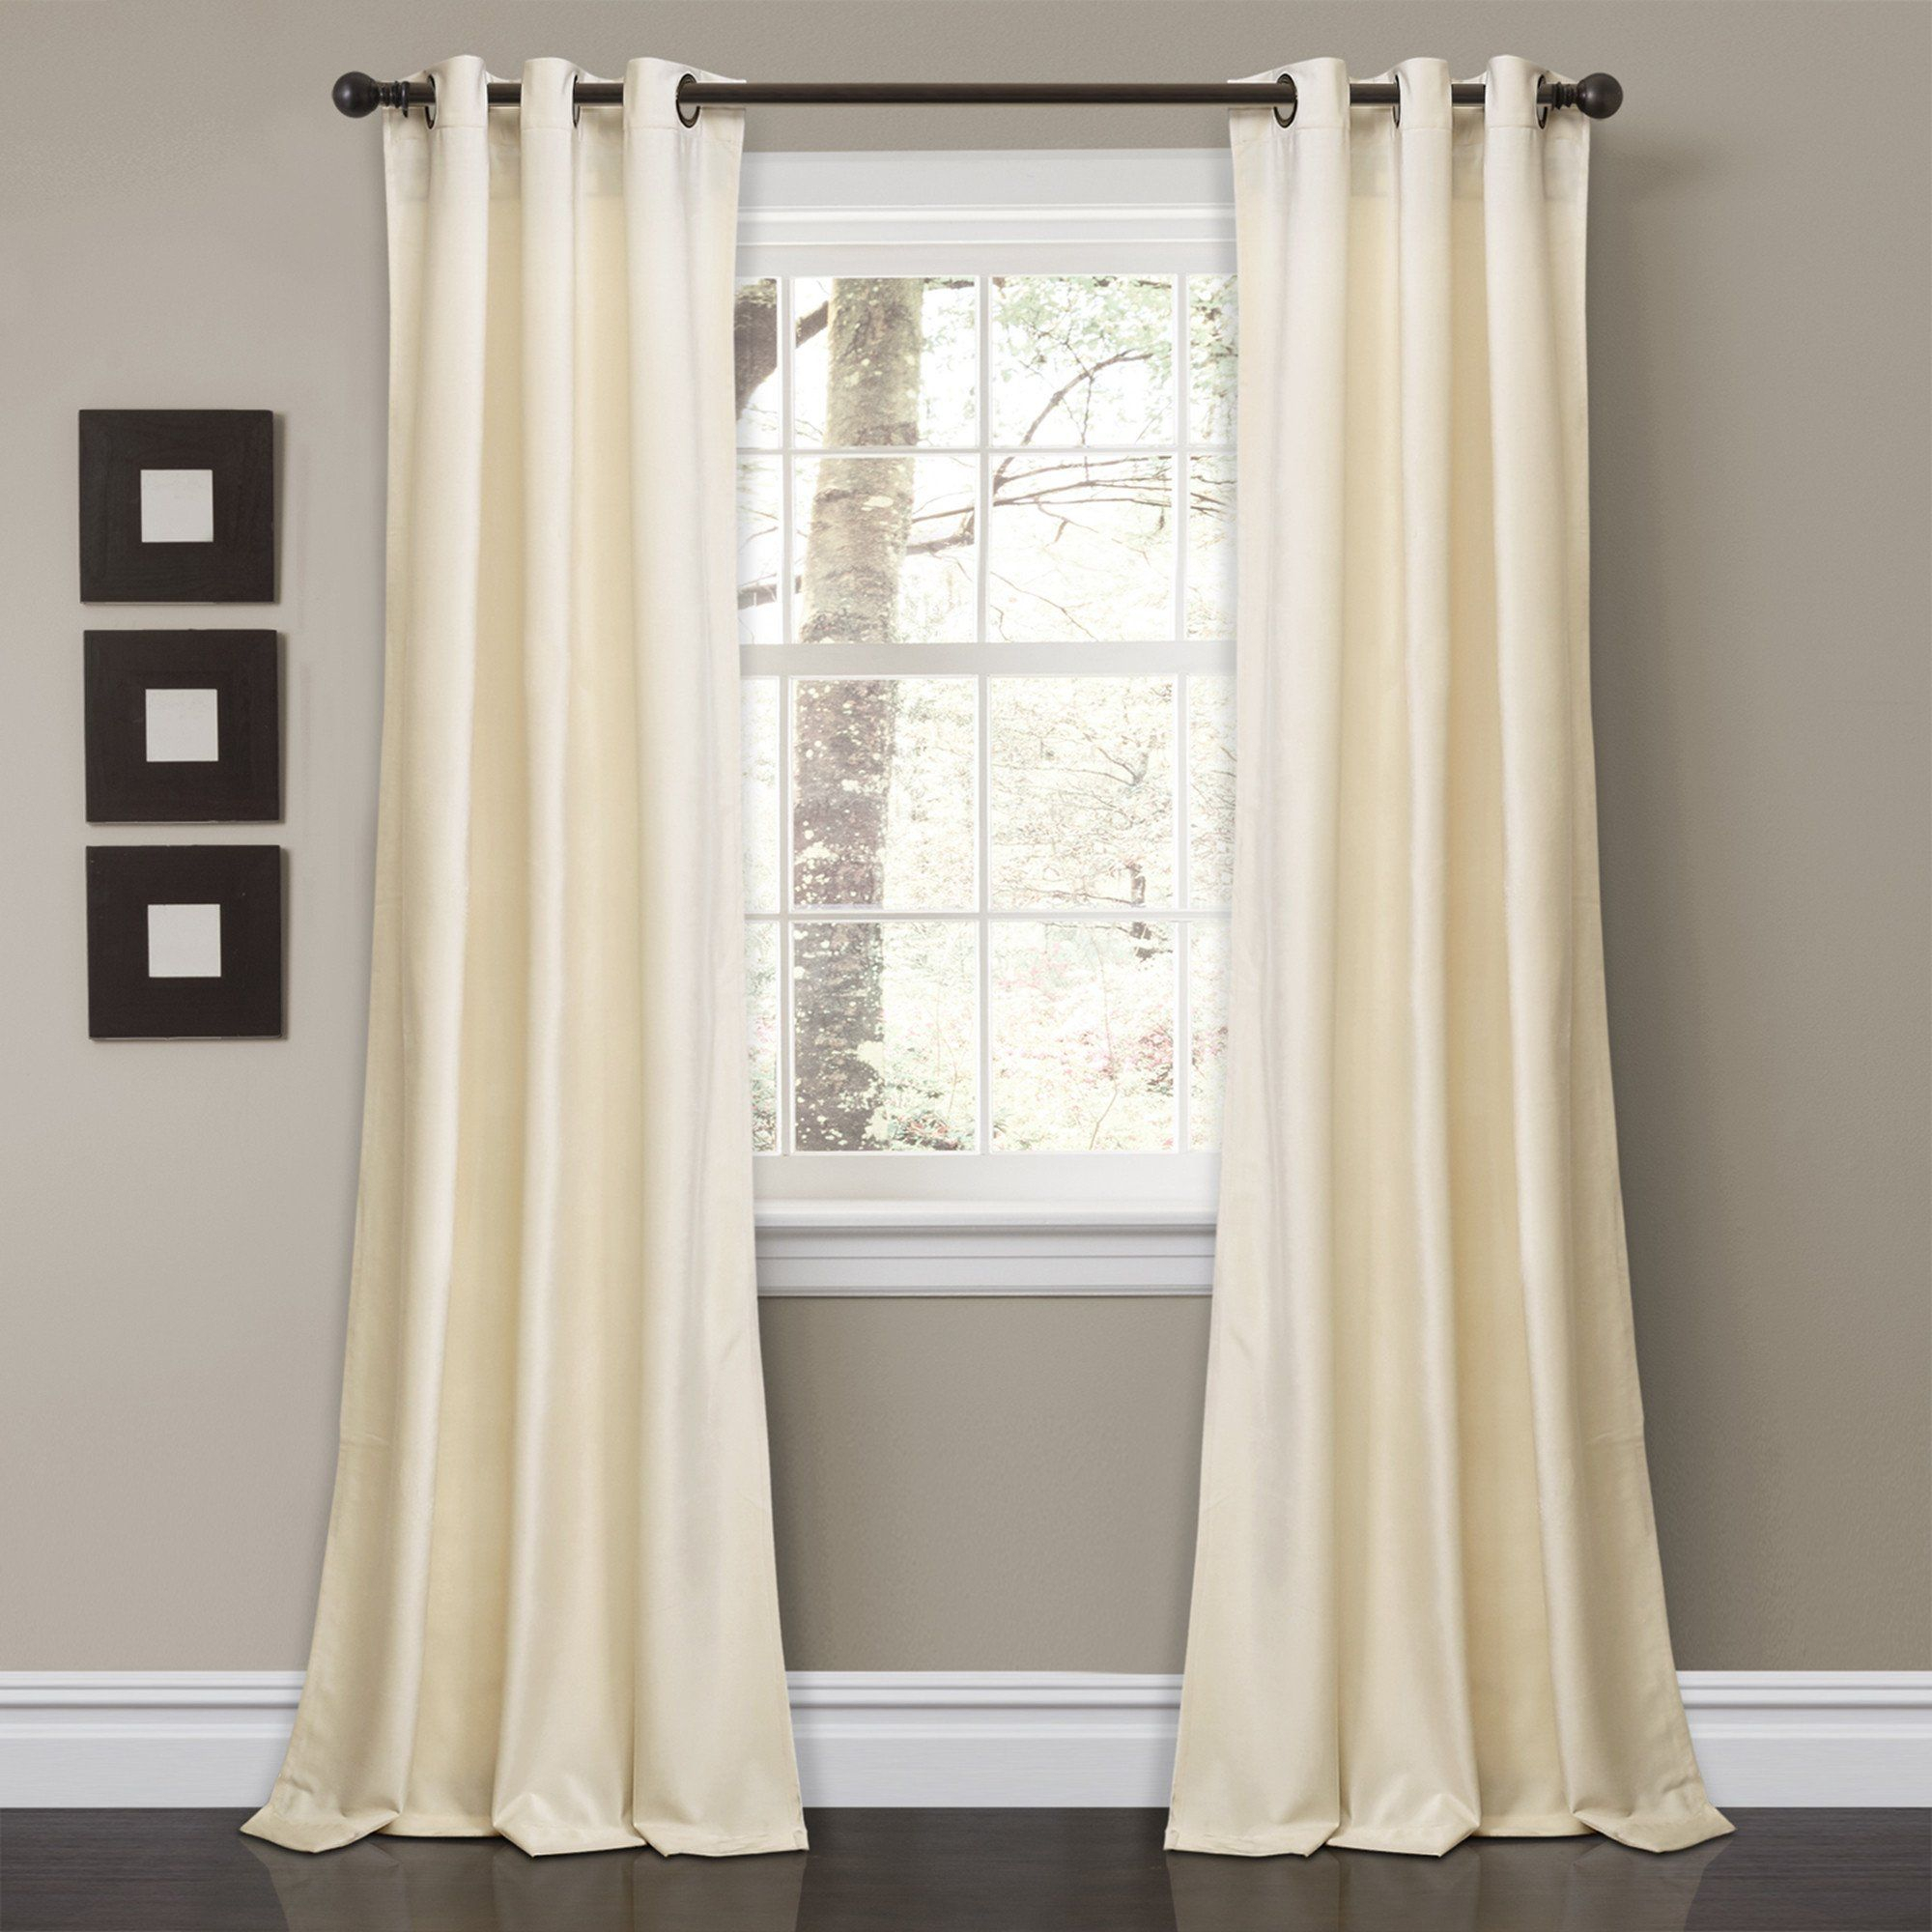 Prima Velvet Solid Room Darkening Window Curtain Panel Set Within Velvet Solid Room Darkening Window Curtain Panel Sets (View 2 of 30)